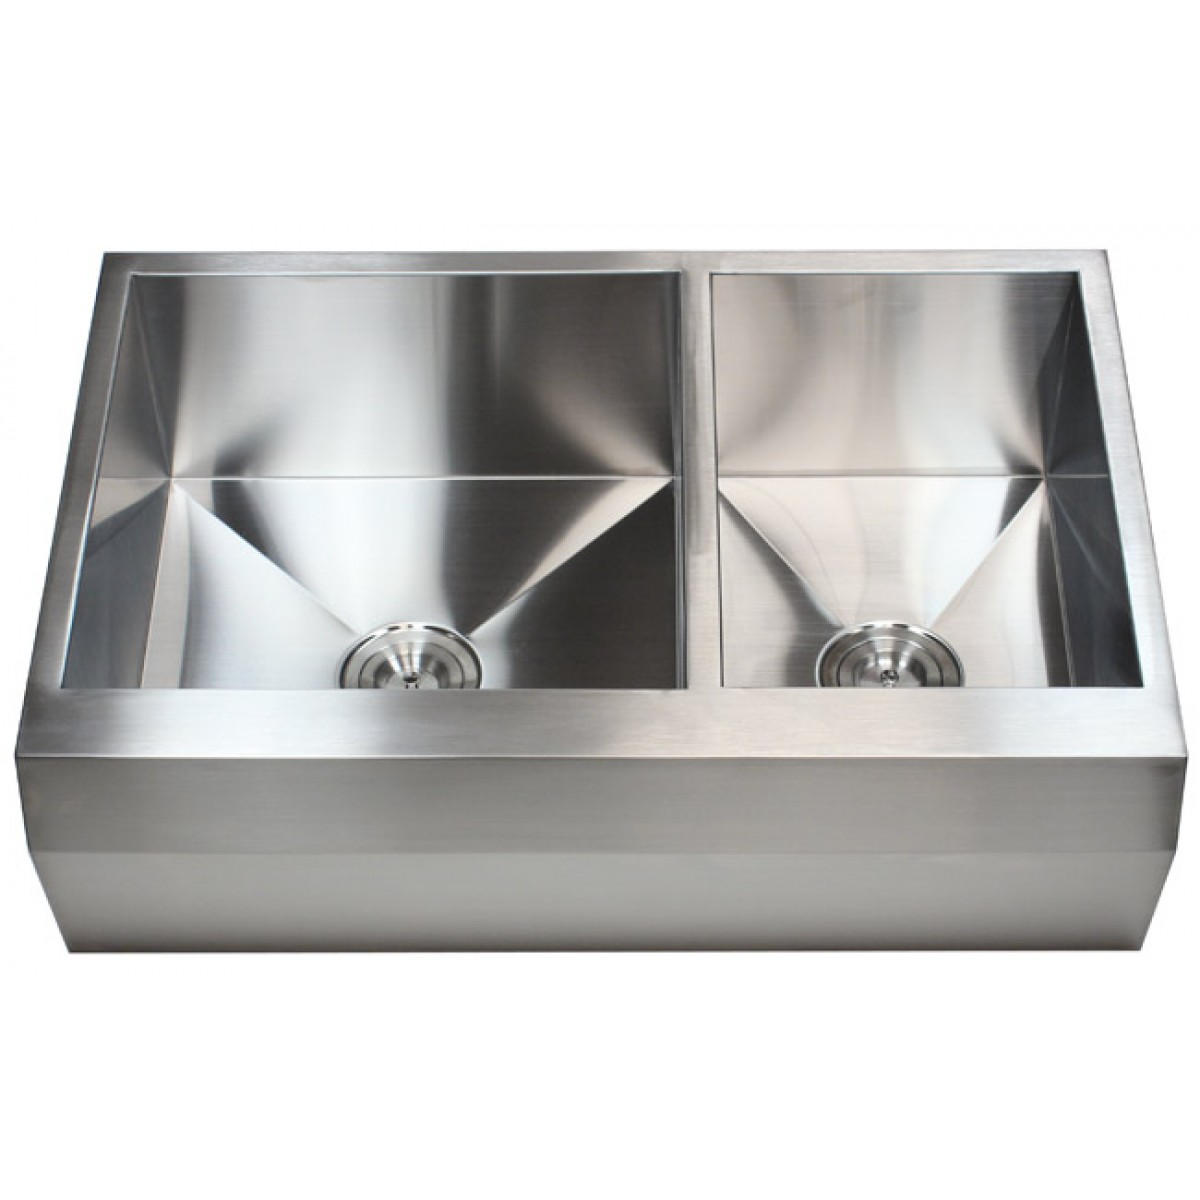 Overstock Farmhouse Sink 33 Inch Stainless Steel 60 40 Double Bowl Zero Radius Well